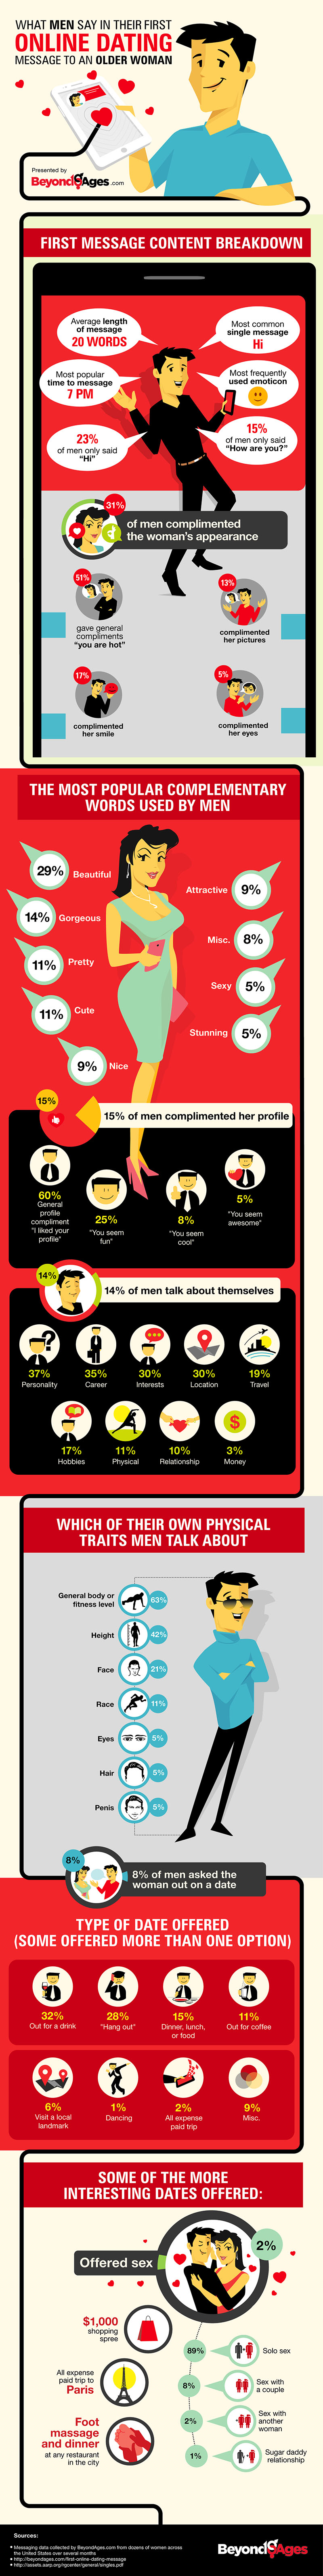 What To Say In The First Online Dating Message  Infographic